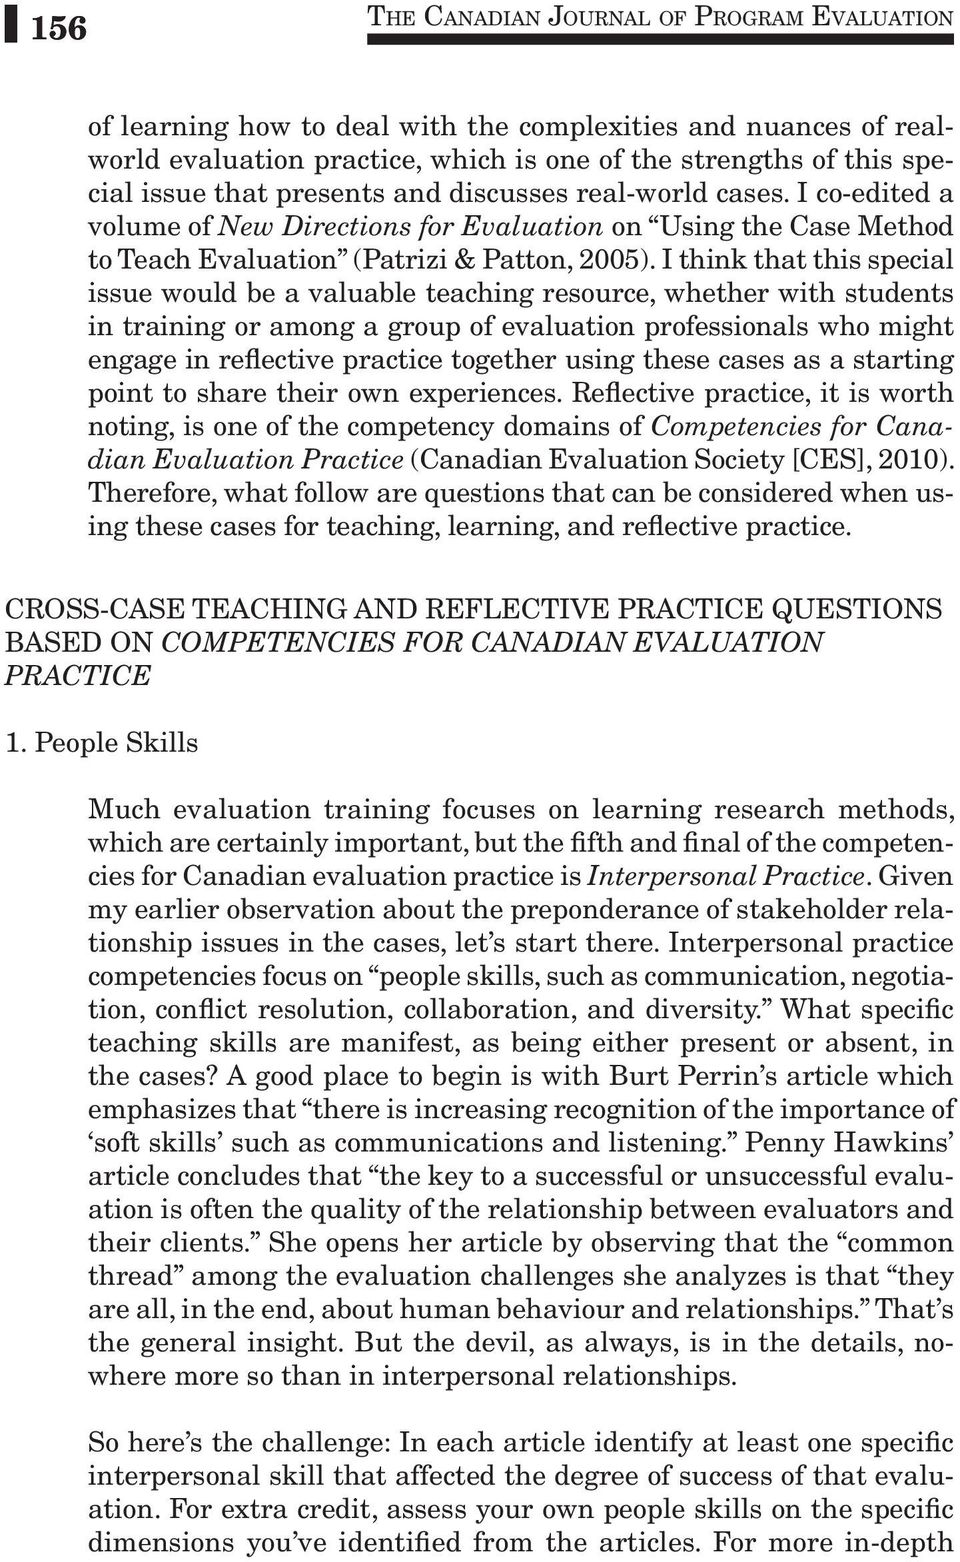 I think that this special issue would be a valuable teaching resource, whether with students in training or among a group of evaluation professionals who might engage in reflective practice together